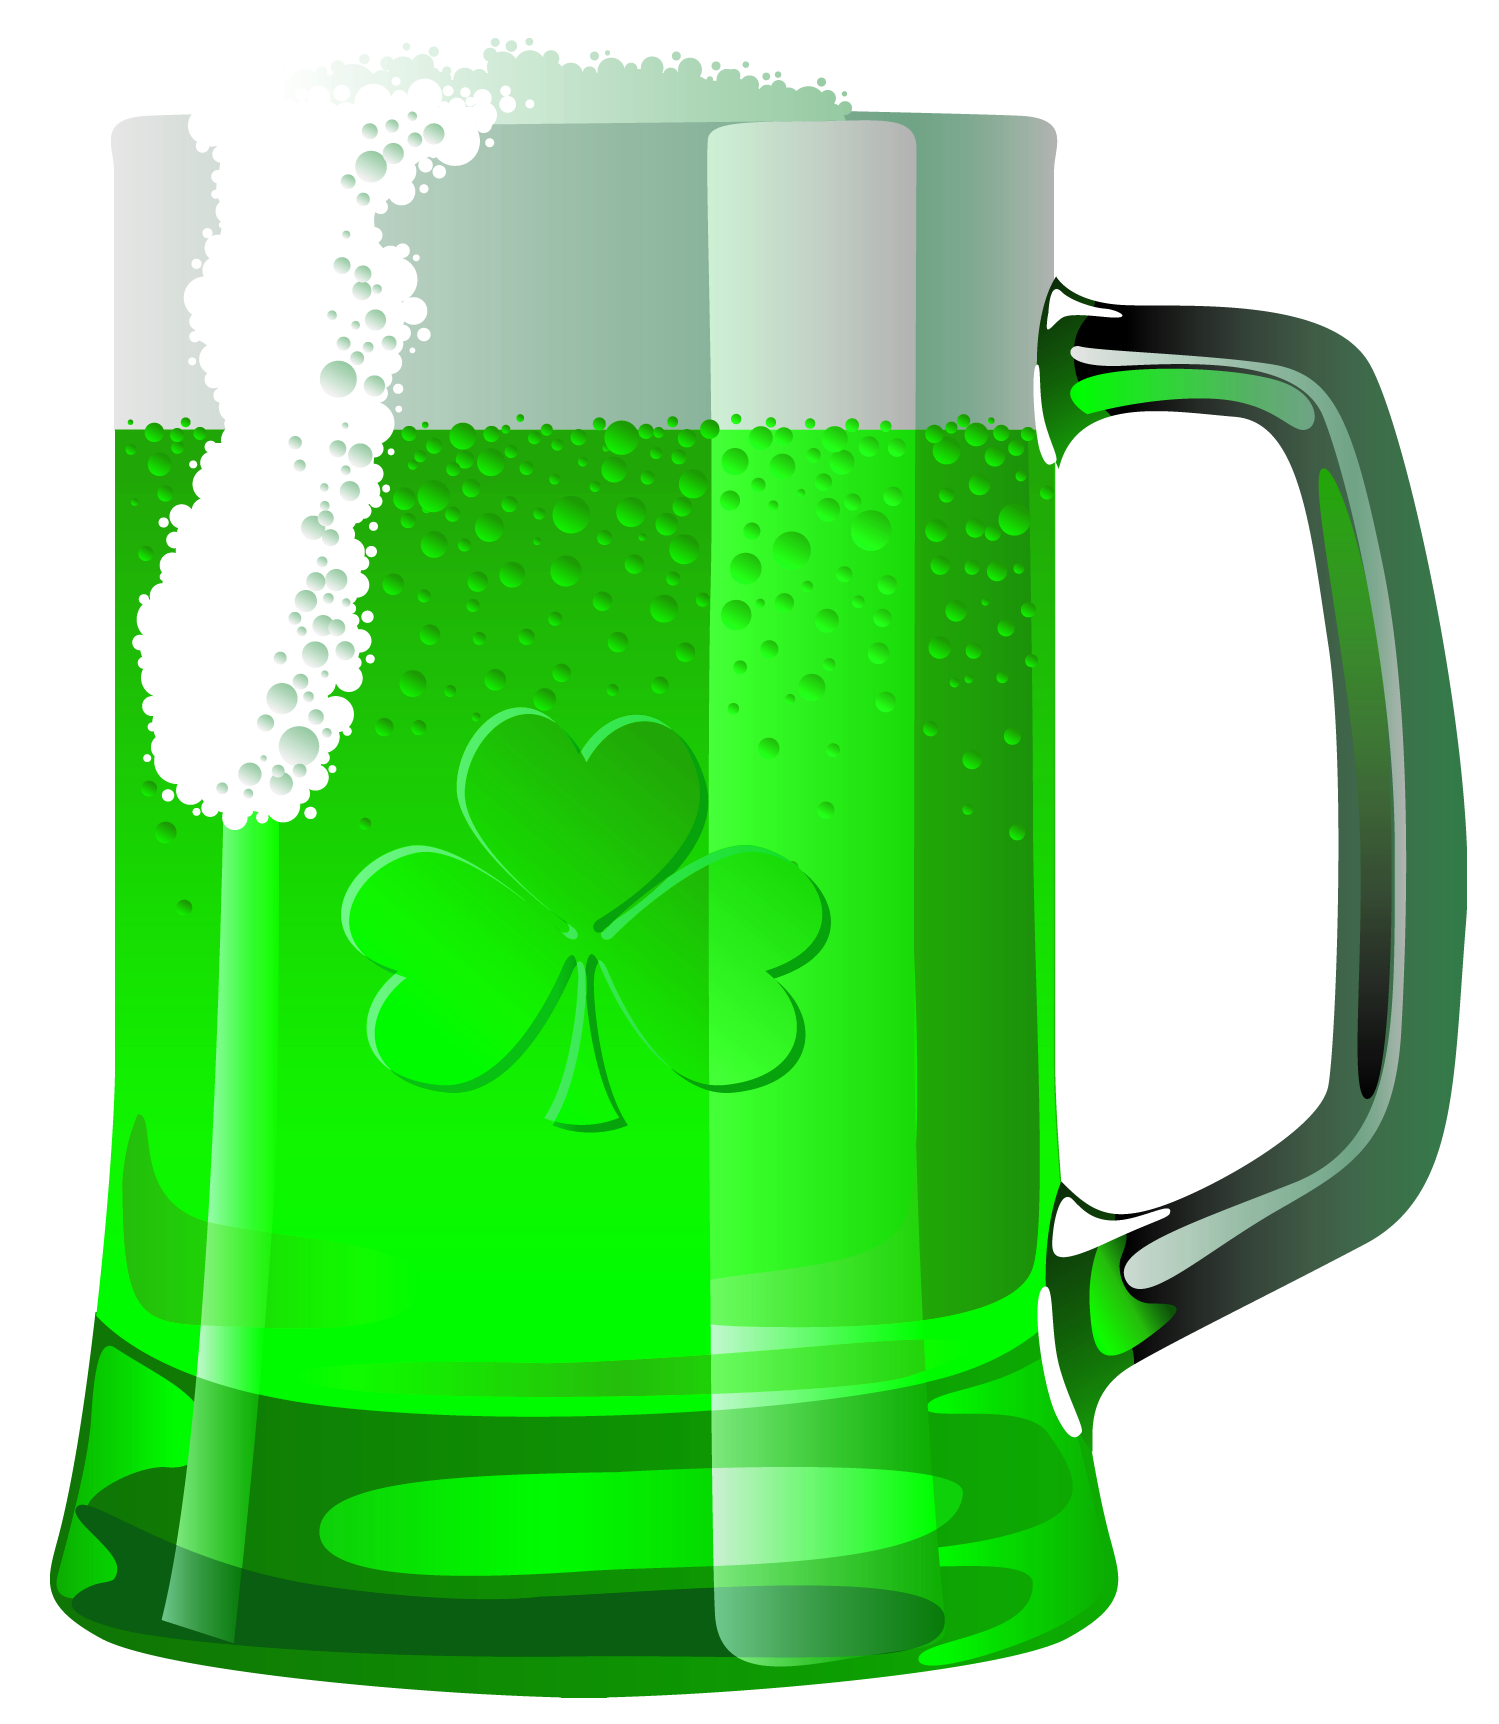 Green cross clipart picture black and white library Free Green Beer Cliparts, Download Free Clip Art, Free Clip Art on ... picture black and white library